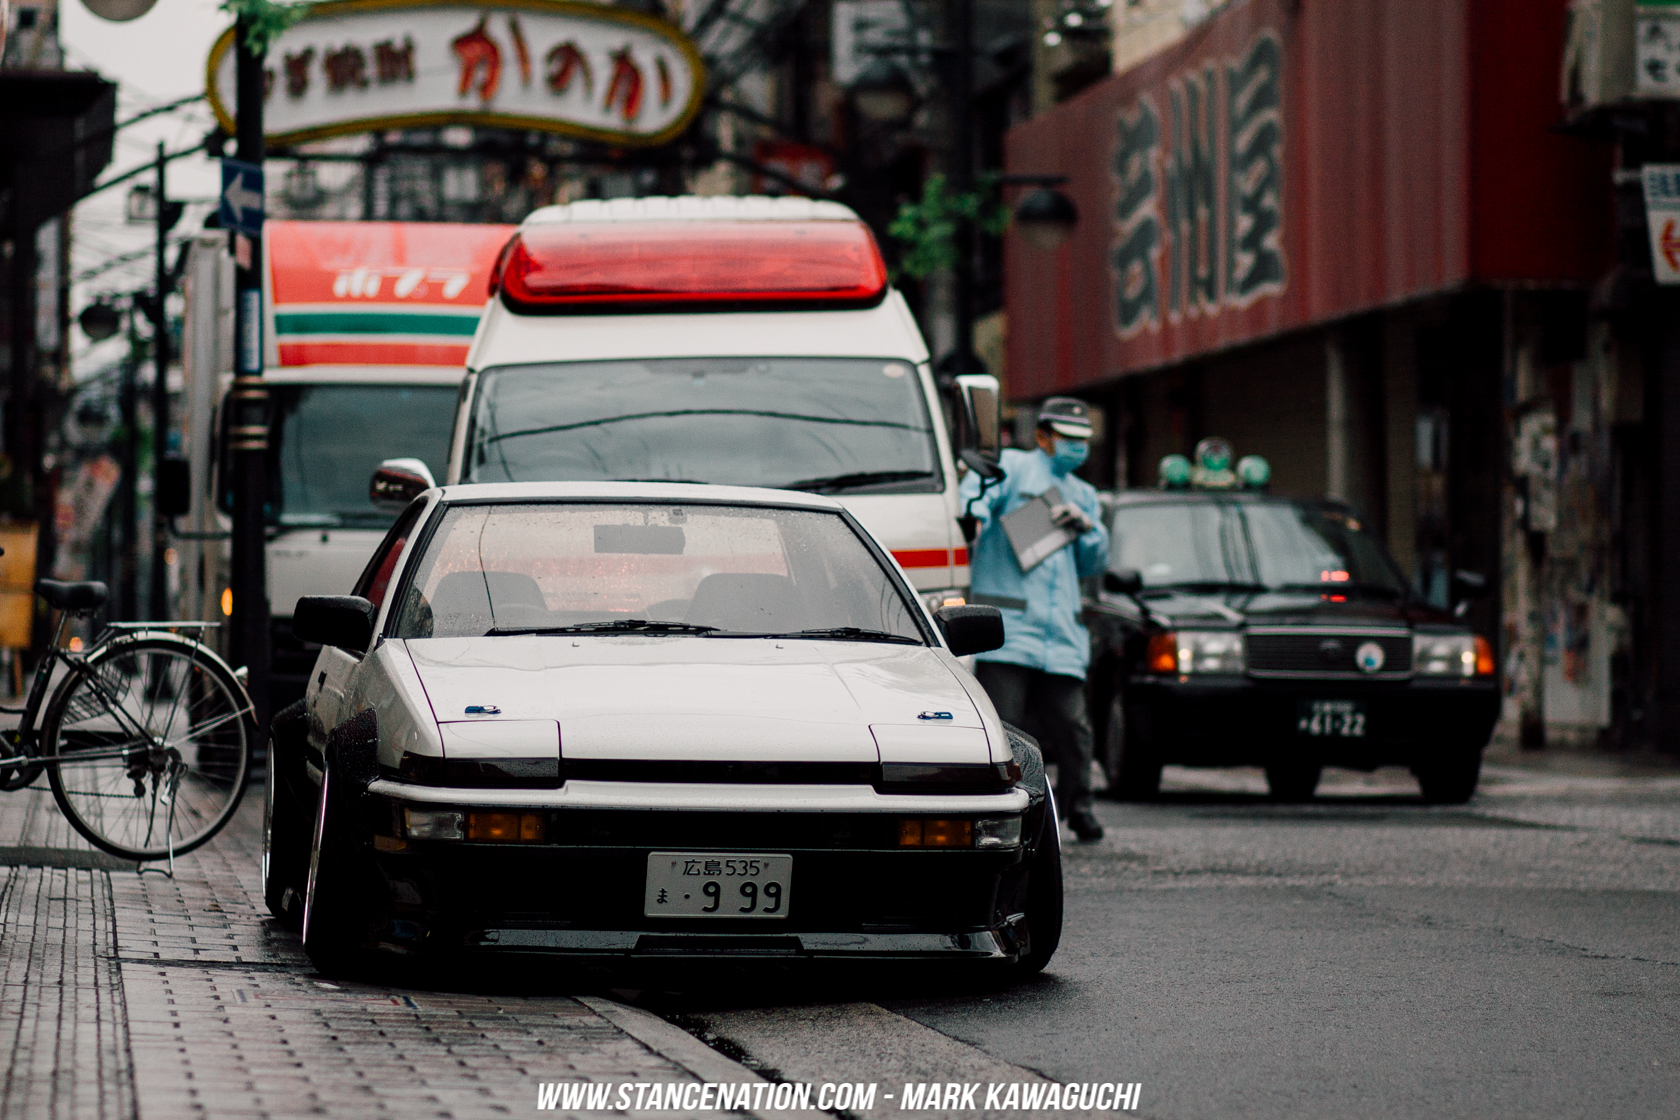 Stanced Car Iphone Wallpaper Old School Perfection Takanobu S Toyota Sprinter Trueno